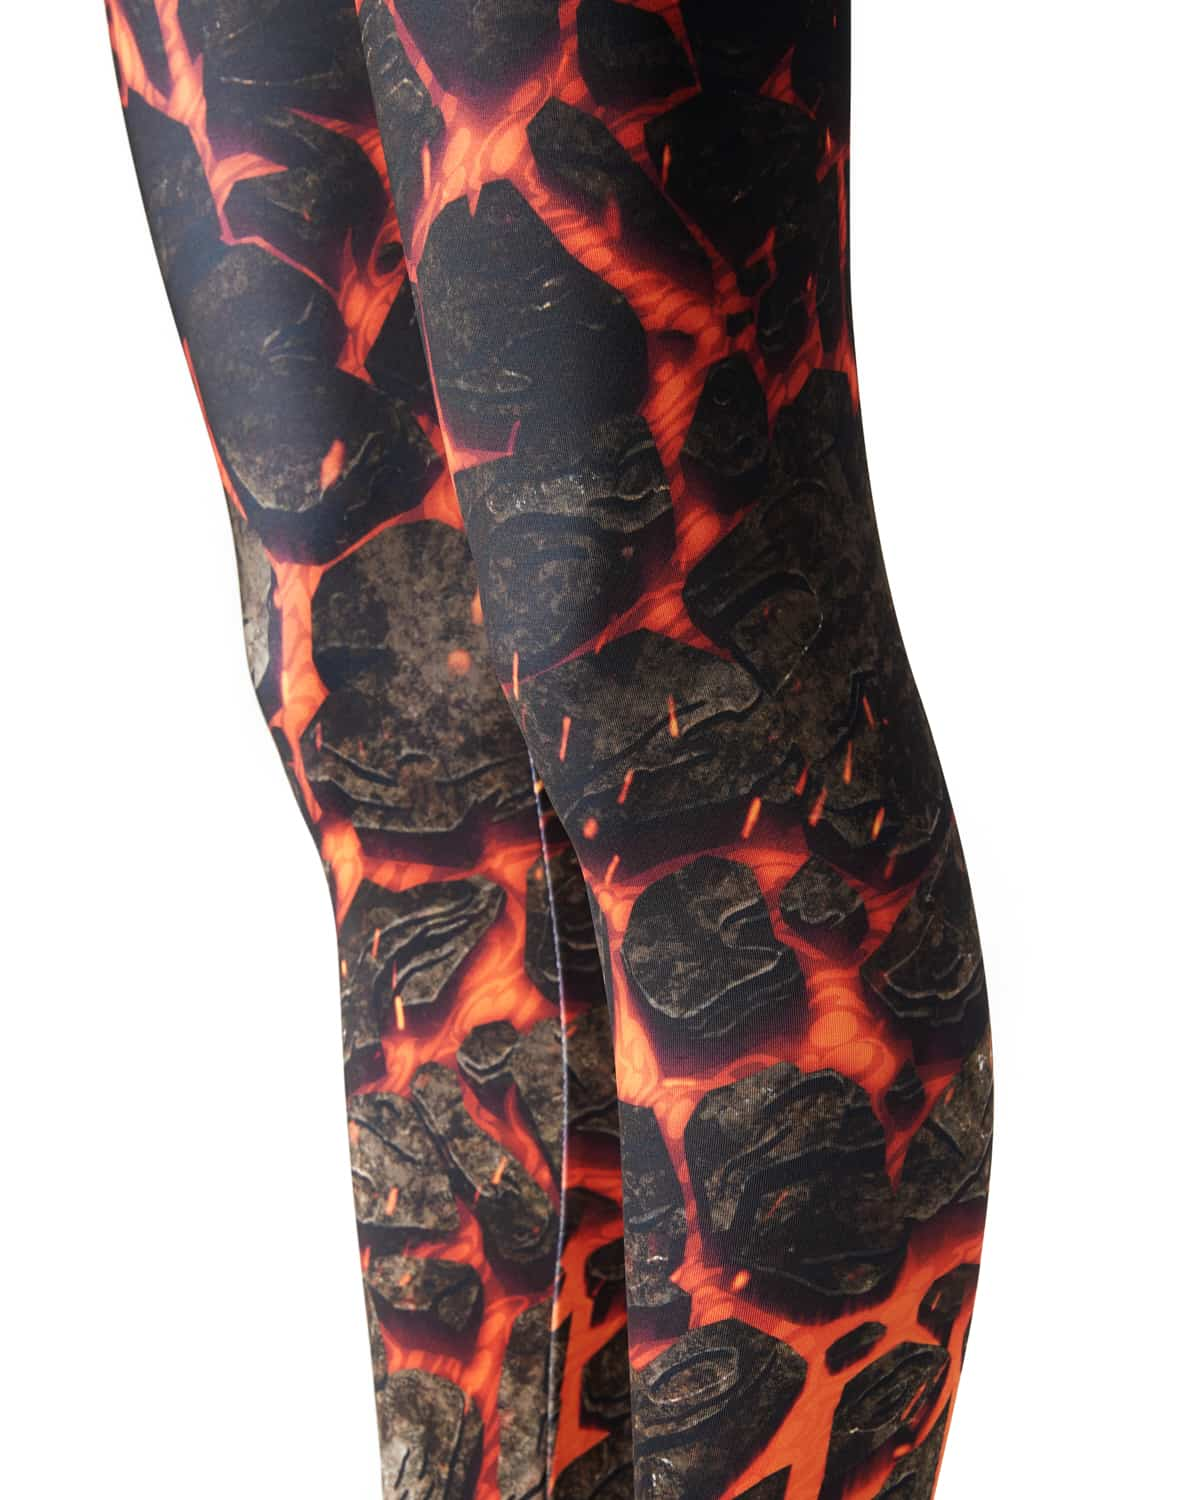 Lost Lands 'Magma' Leggings (Orange)